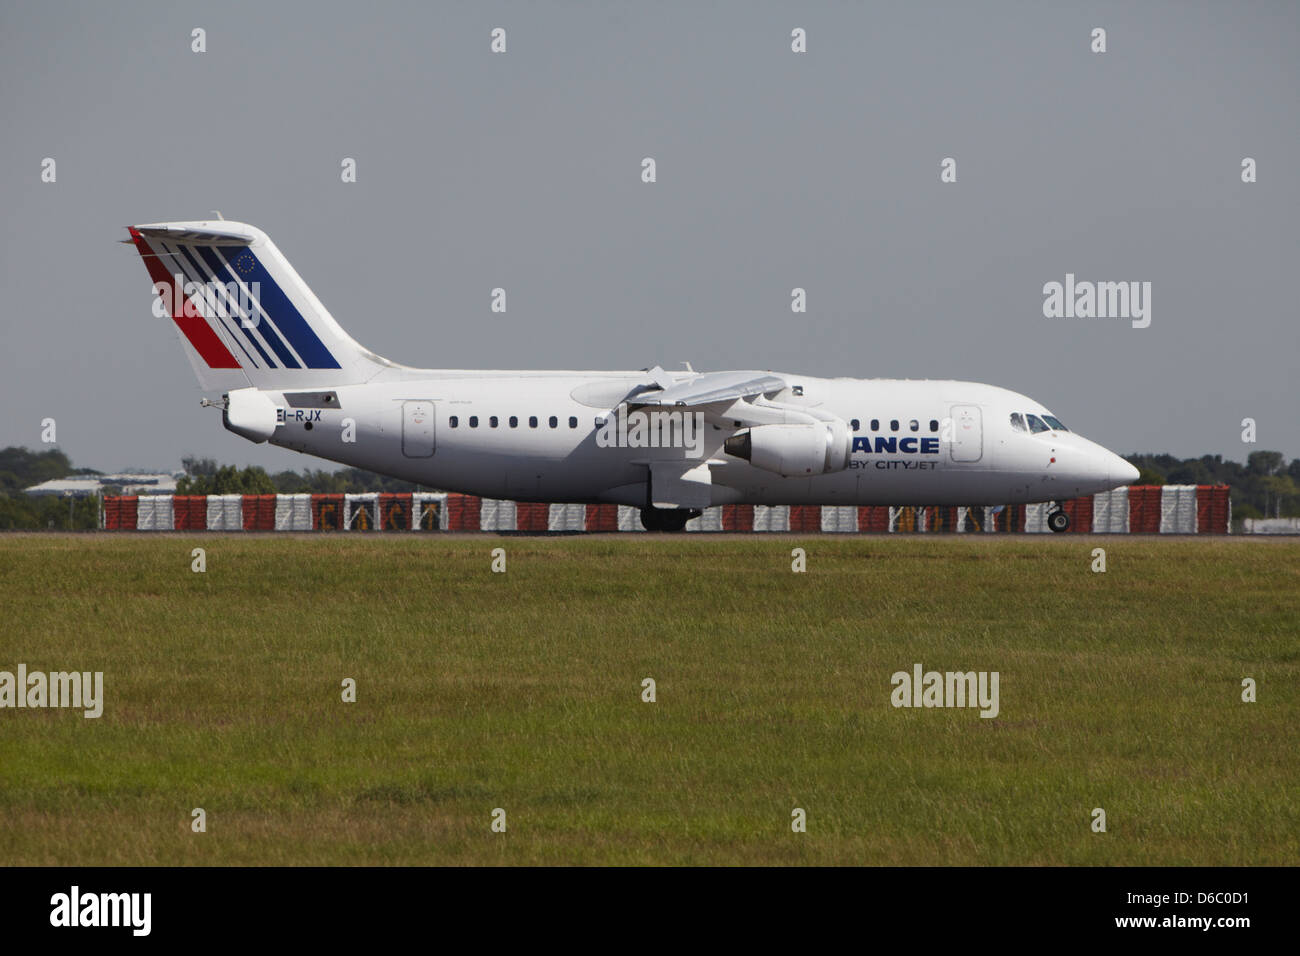 Cityjet (Air France) BAe Avro RJ85 slowing down after landing - Stock Image